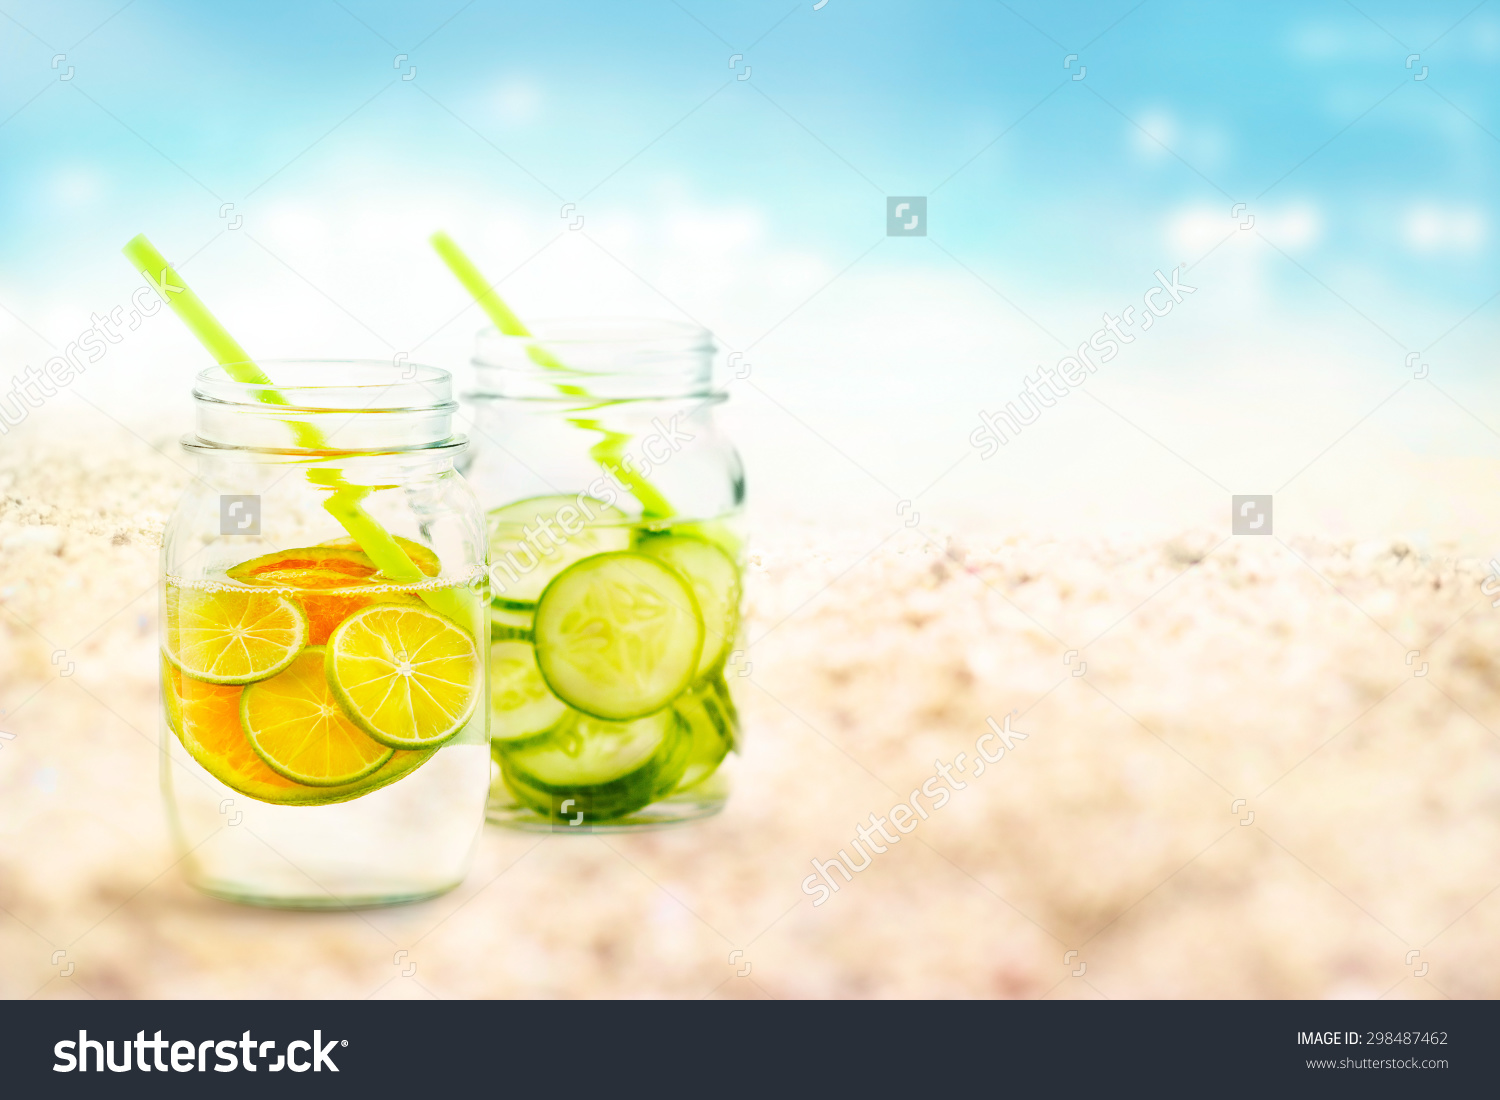 Infused Water Lemon And Cucumber In Mug On Sea Sand Beach Summer.